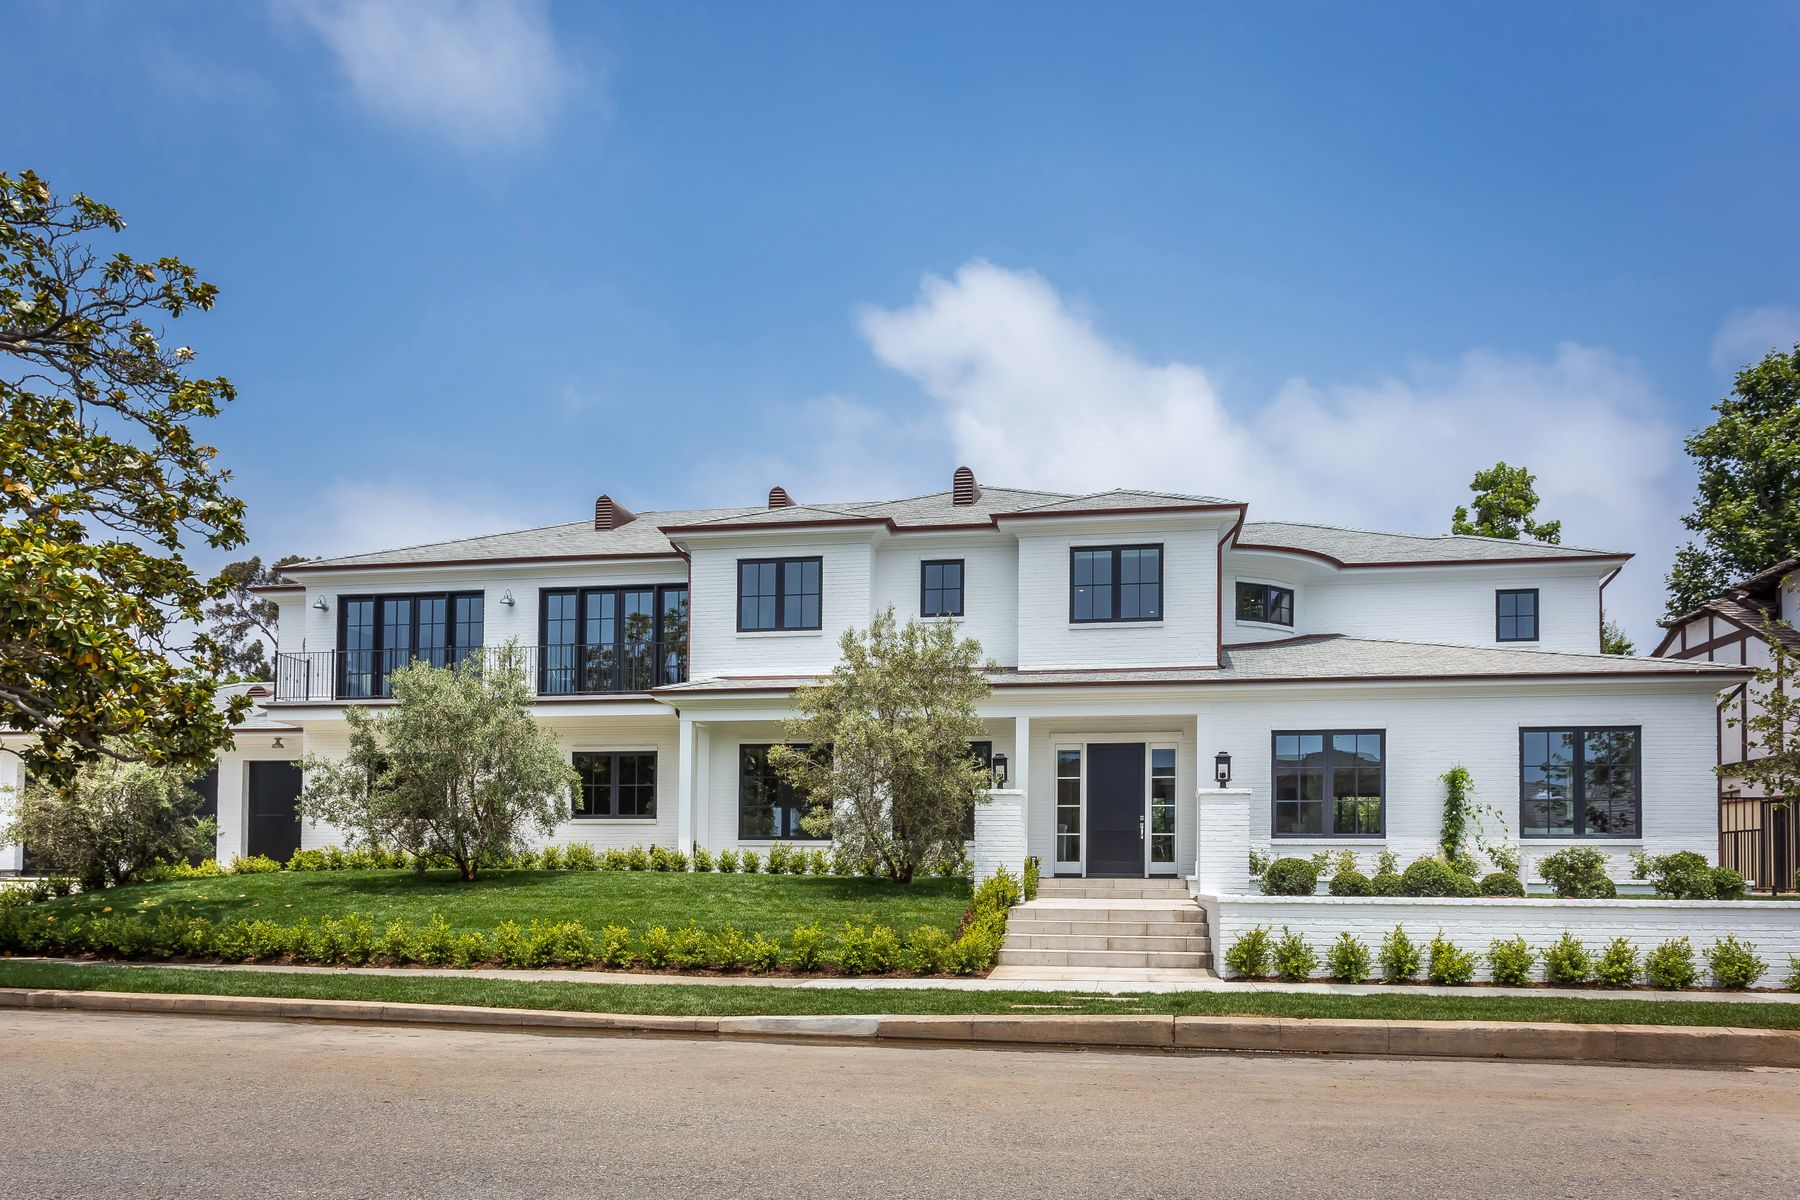 Single Family Homes for Sale at Brand New Pacific Palisades Estate 14967 Camarosa Drive Pacific Palisades, California 90272 United States